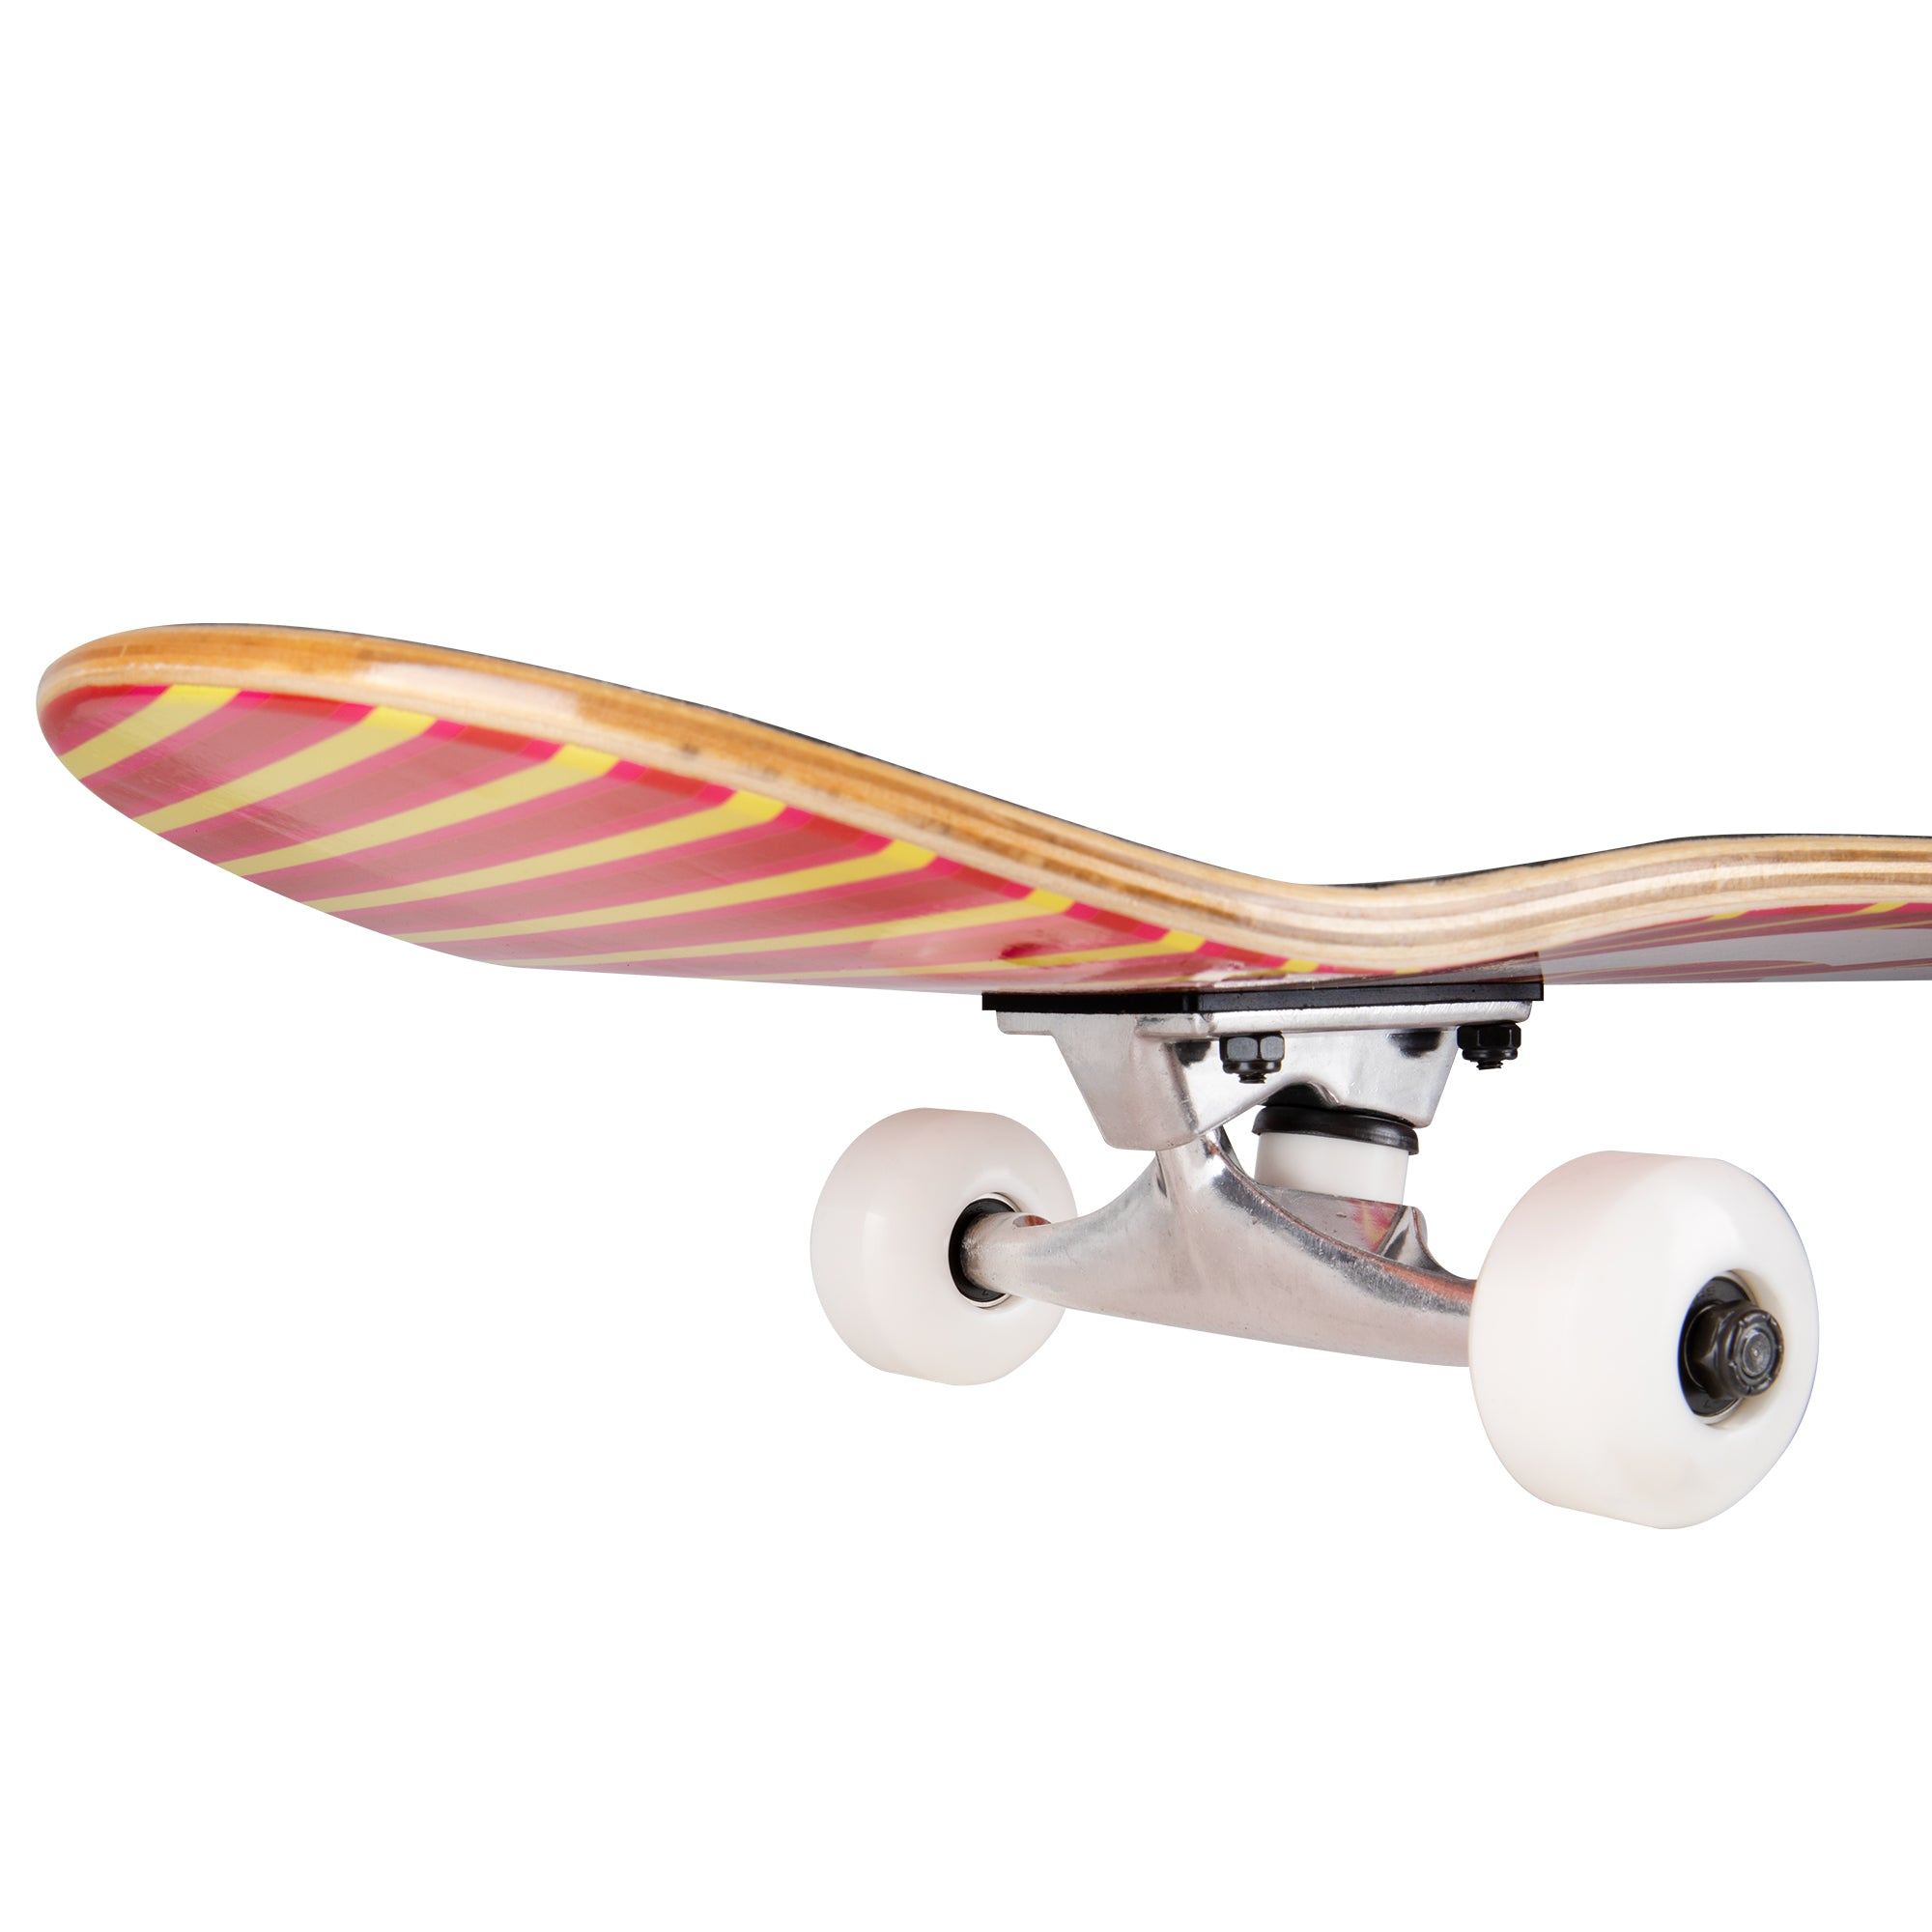 Red-orange Cal 7 complete 8-inch Delirium skateboard